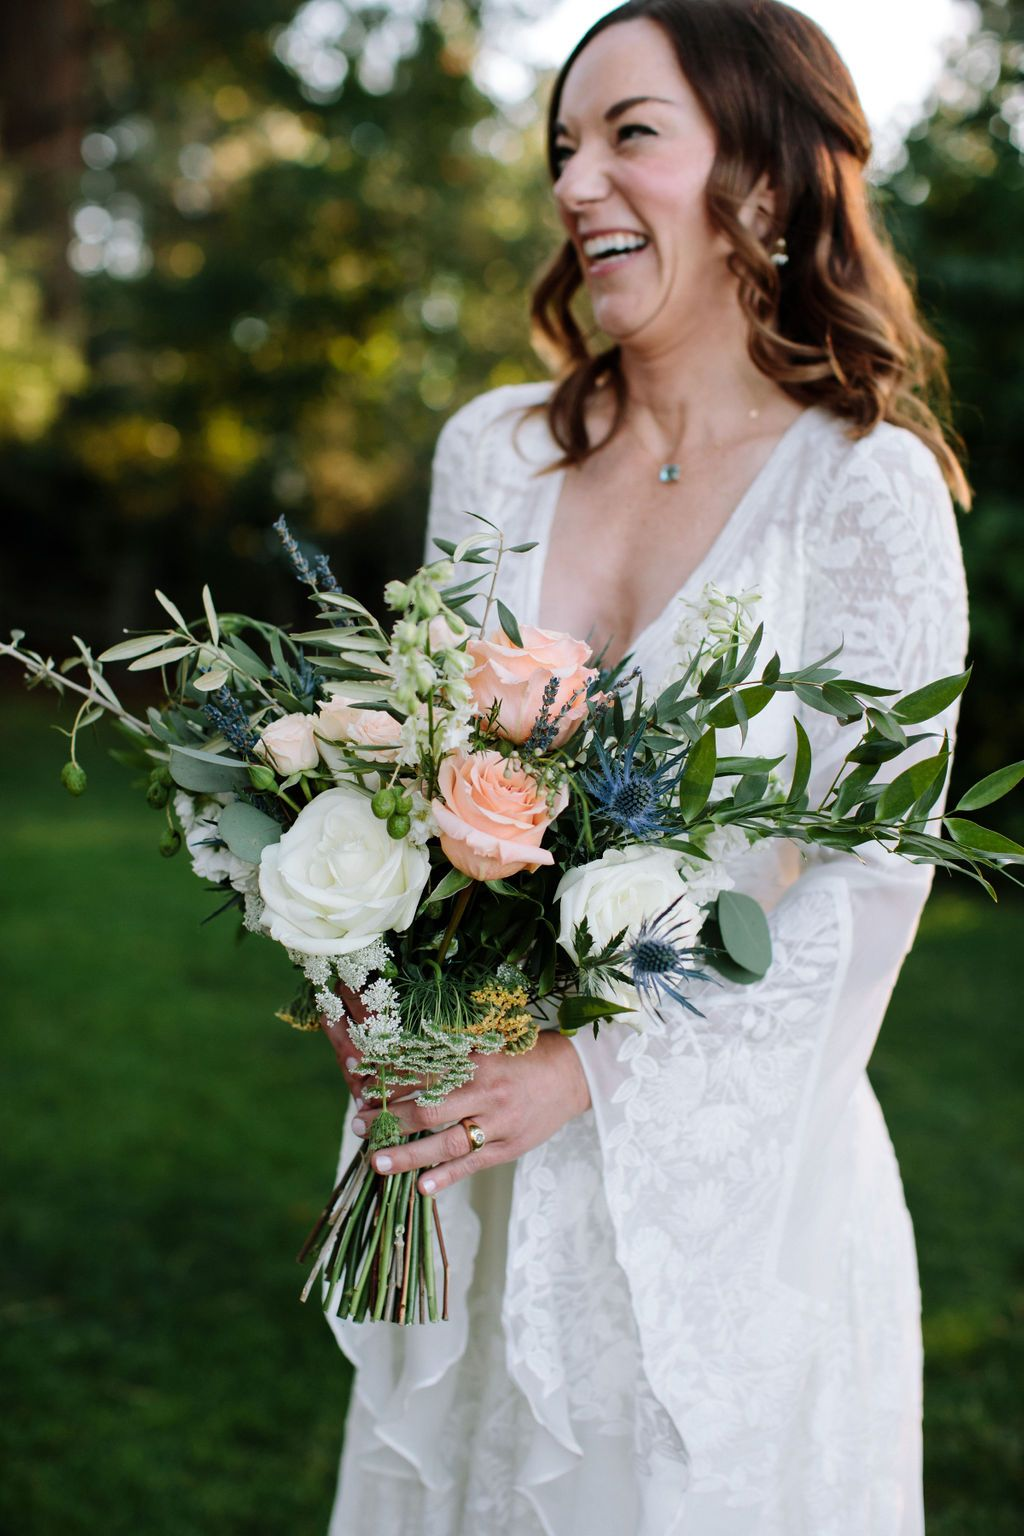 Pin On Floral Design And Inspiration